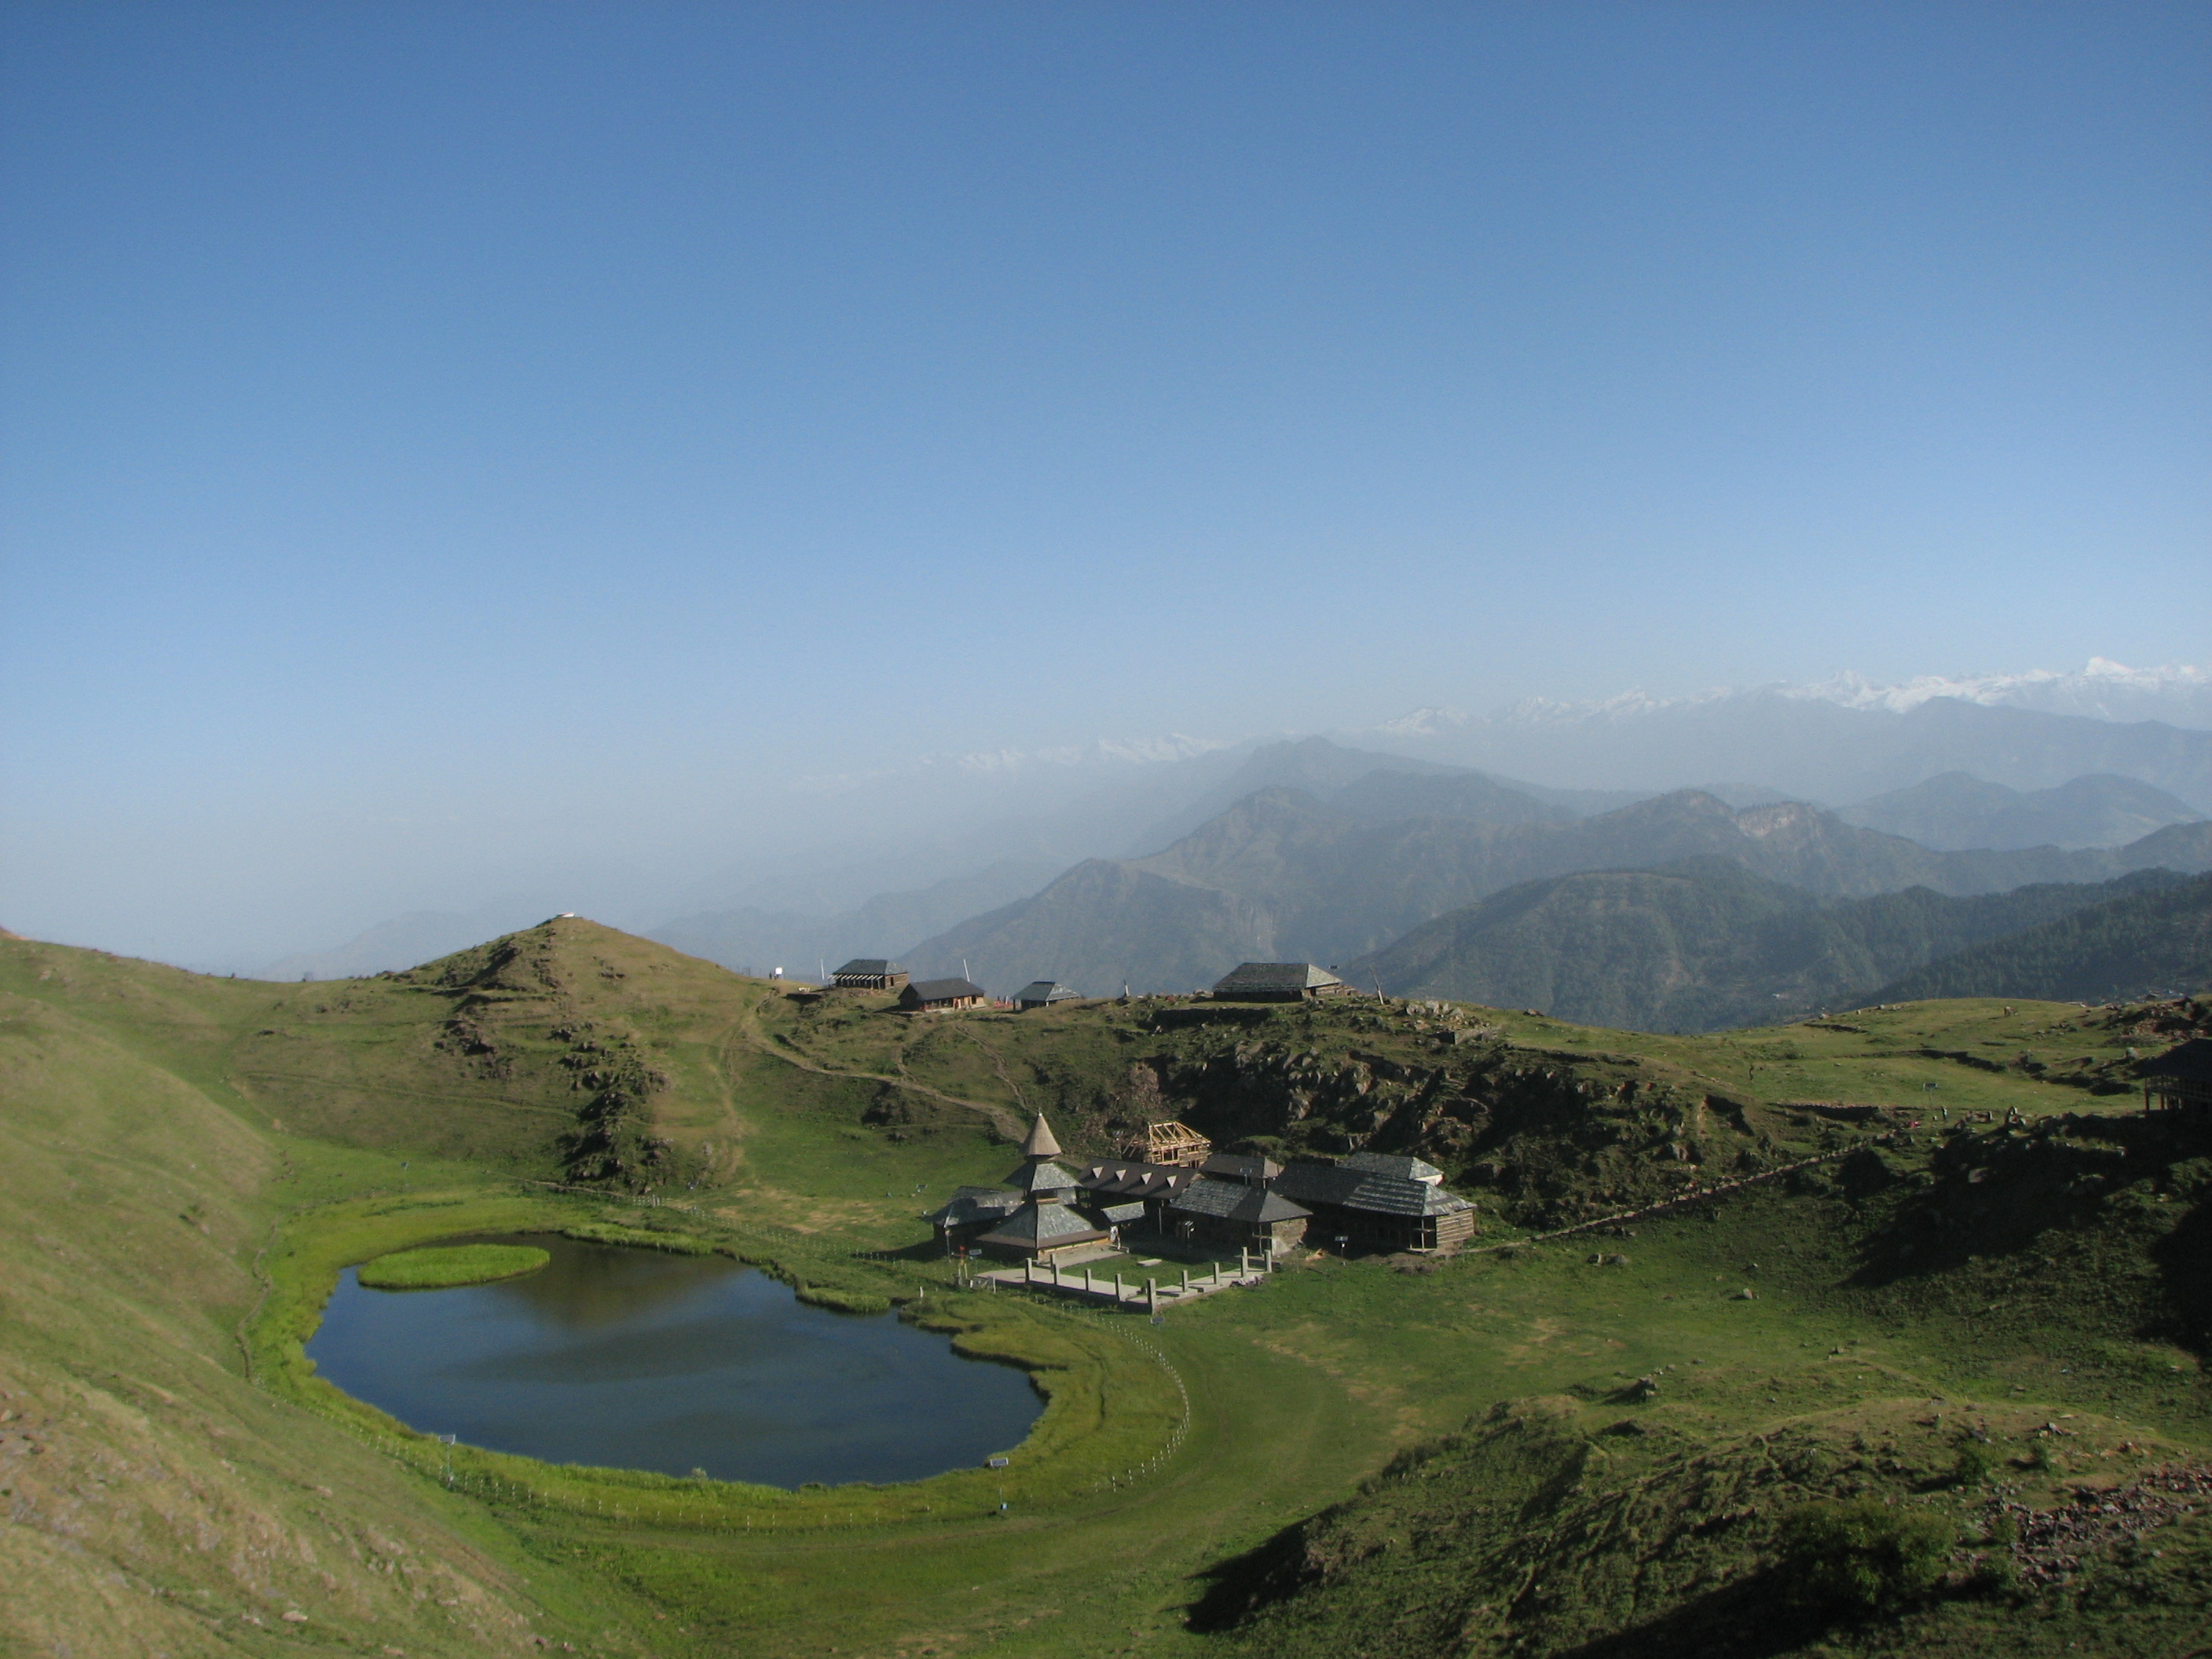 The Floating Island of Prashar Lake